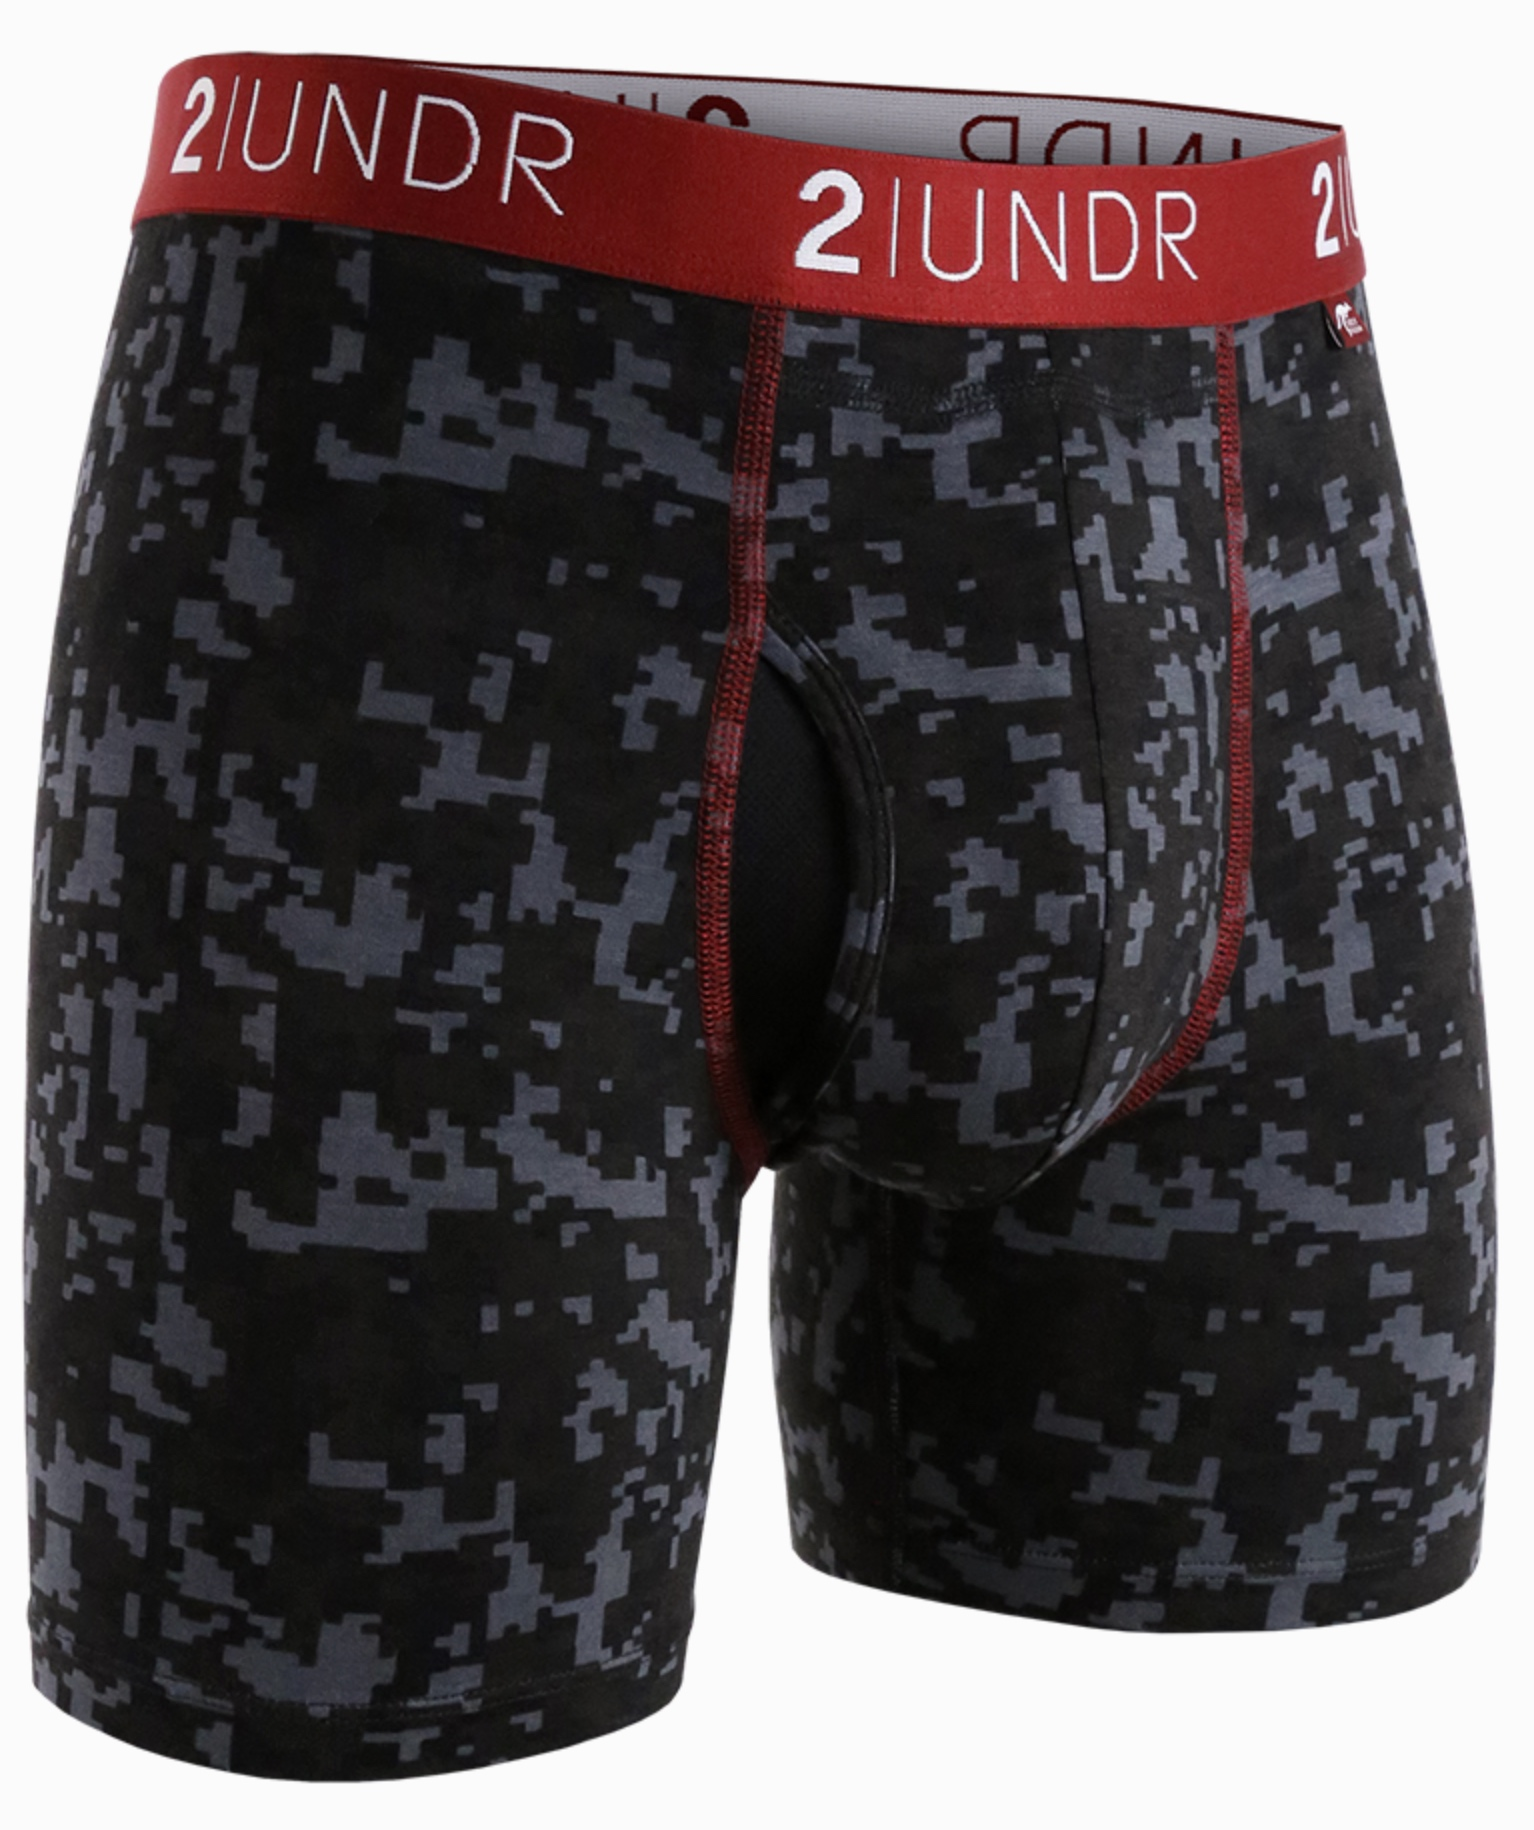 2|UNDR - Joey pouch